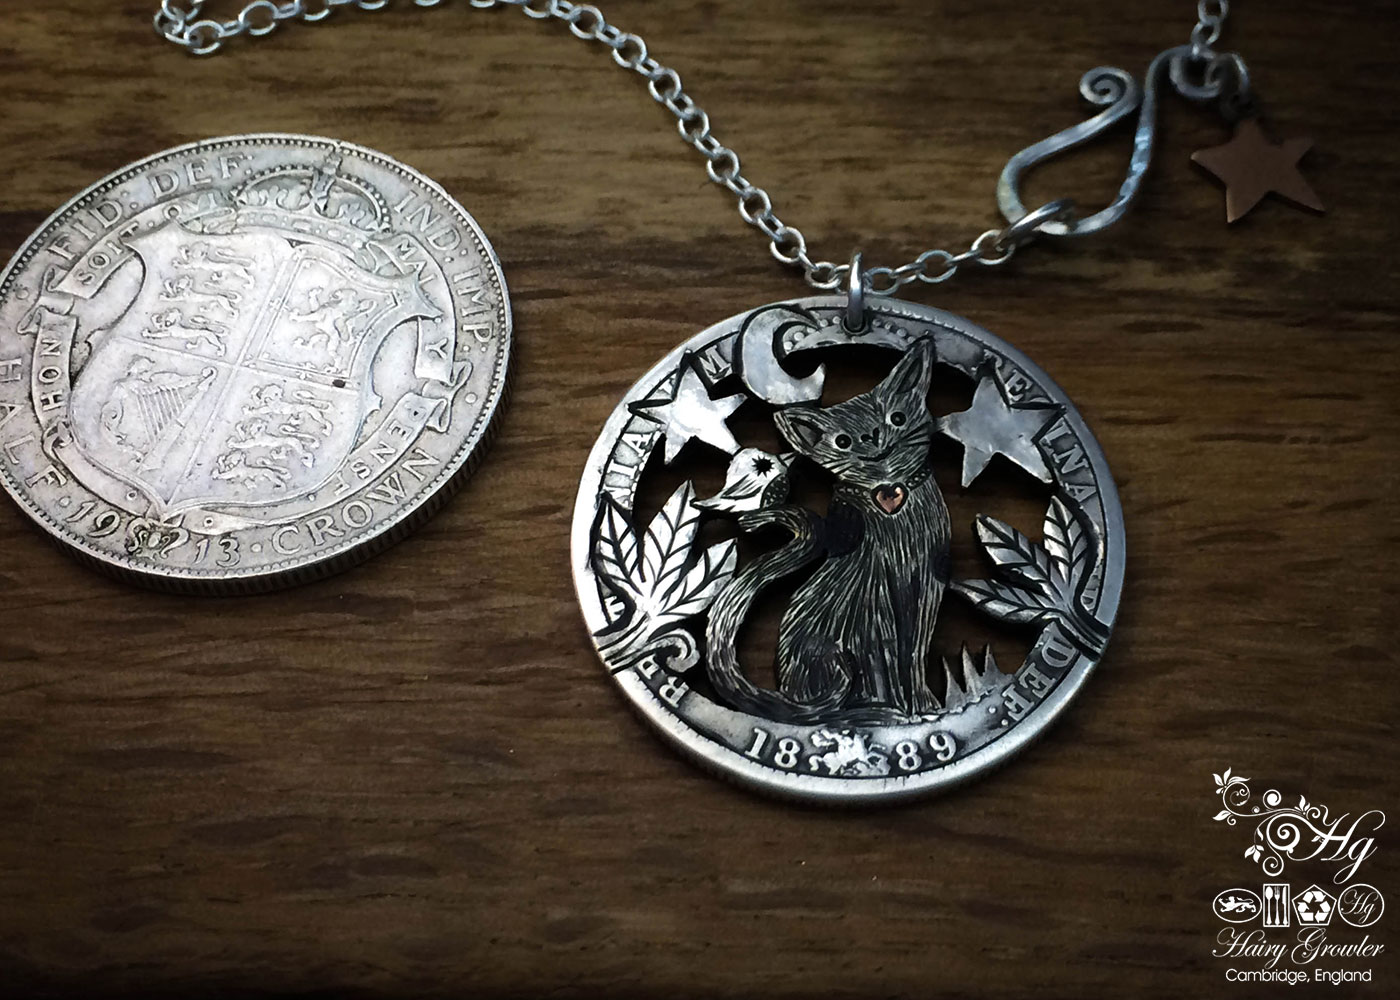 Handcrafted and recycled silver half crown coin cat and bird pendant necklace